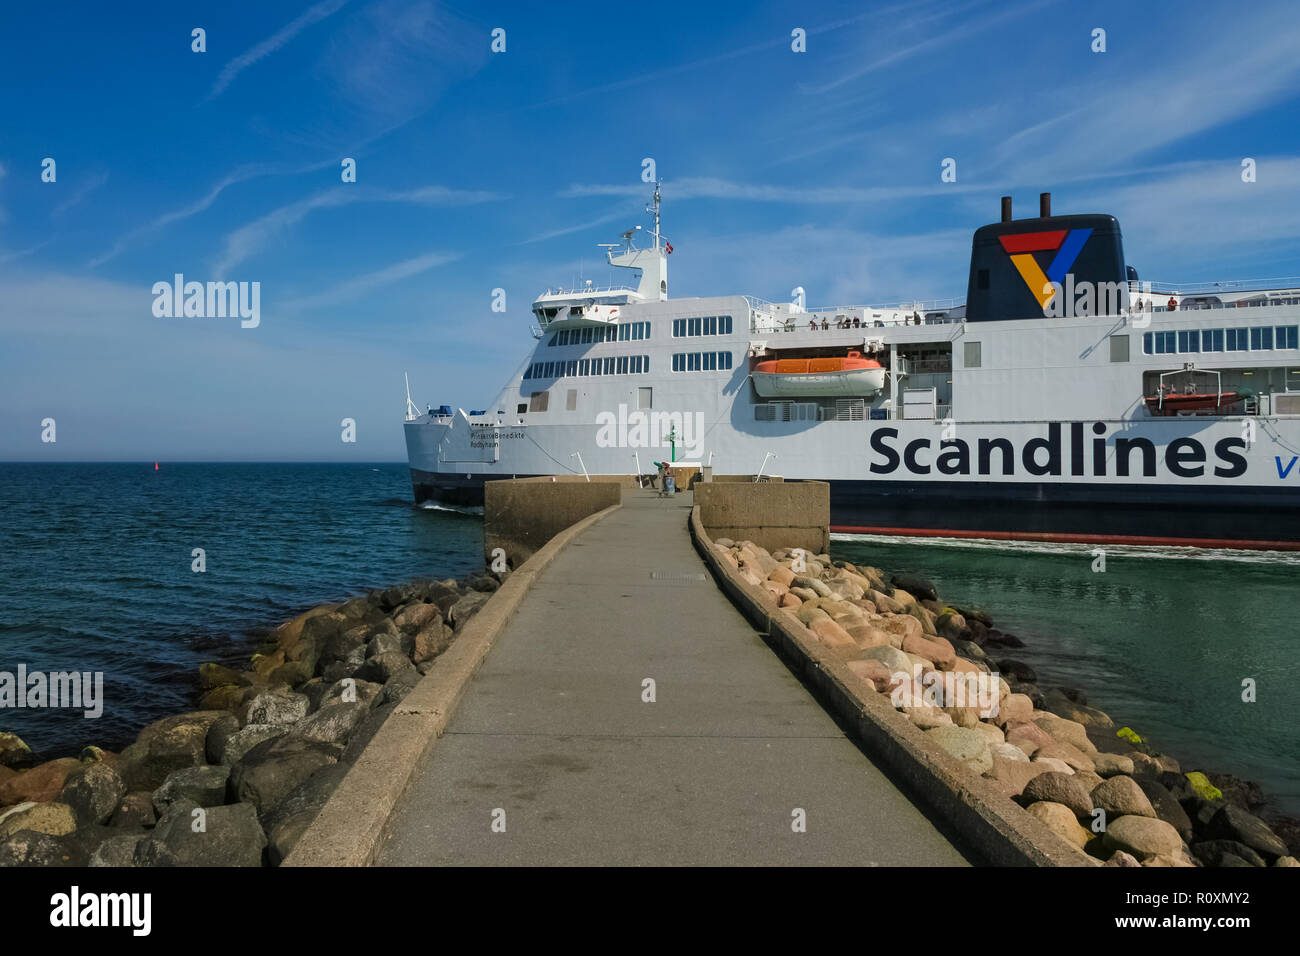 Puttgarden, Fehmarn, Germany - May 6, 2008: Great close-up view of Prinsesse Benedikte, a ferry operated by Scandlines, passing by the breakwaters and... - Stock Image